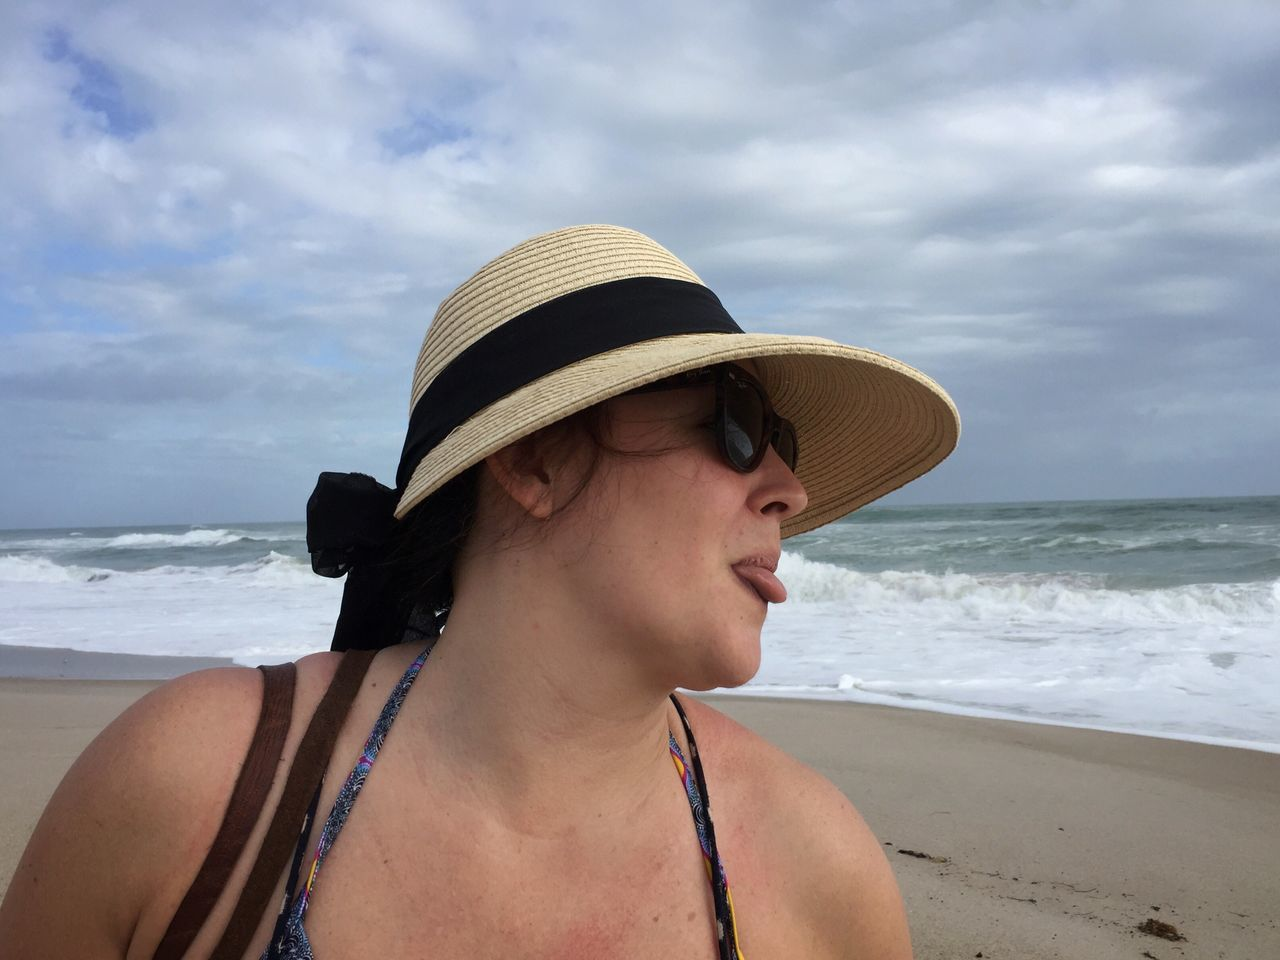 So there! Headshot Hat Beach Sea Beautiful Woman One Person Sun Hat Vacations Real People Young Adult Young Women Melbourne Beach, FL Sticking Out Tongue Lifestyles Sassy